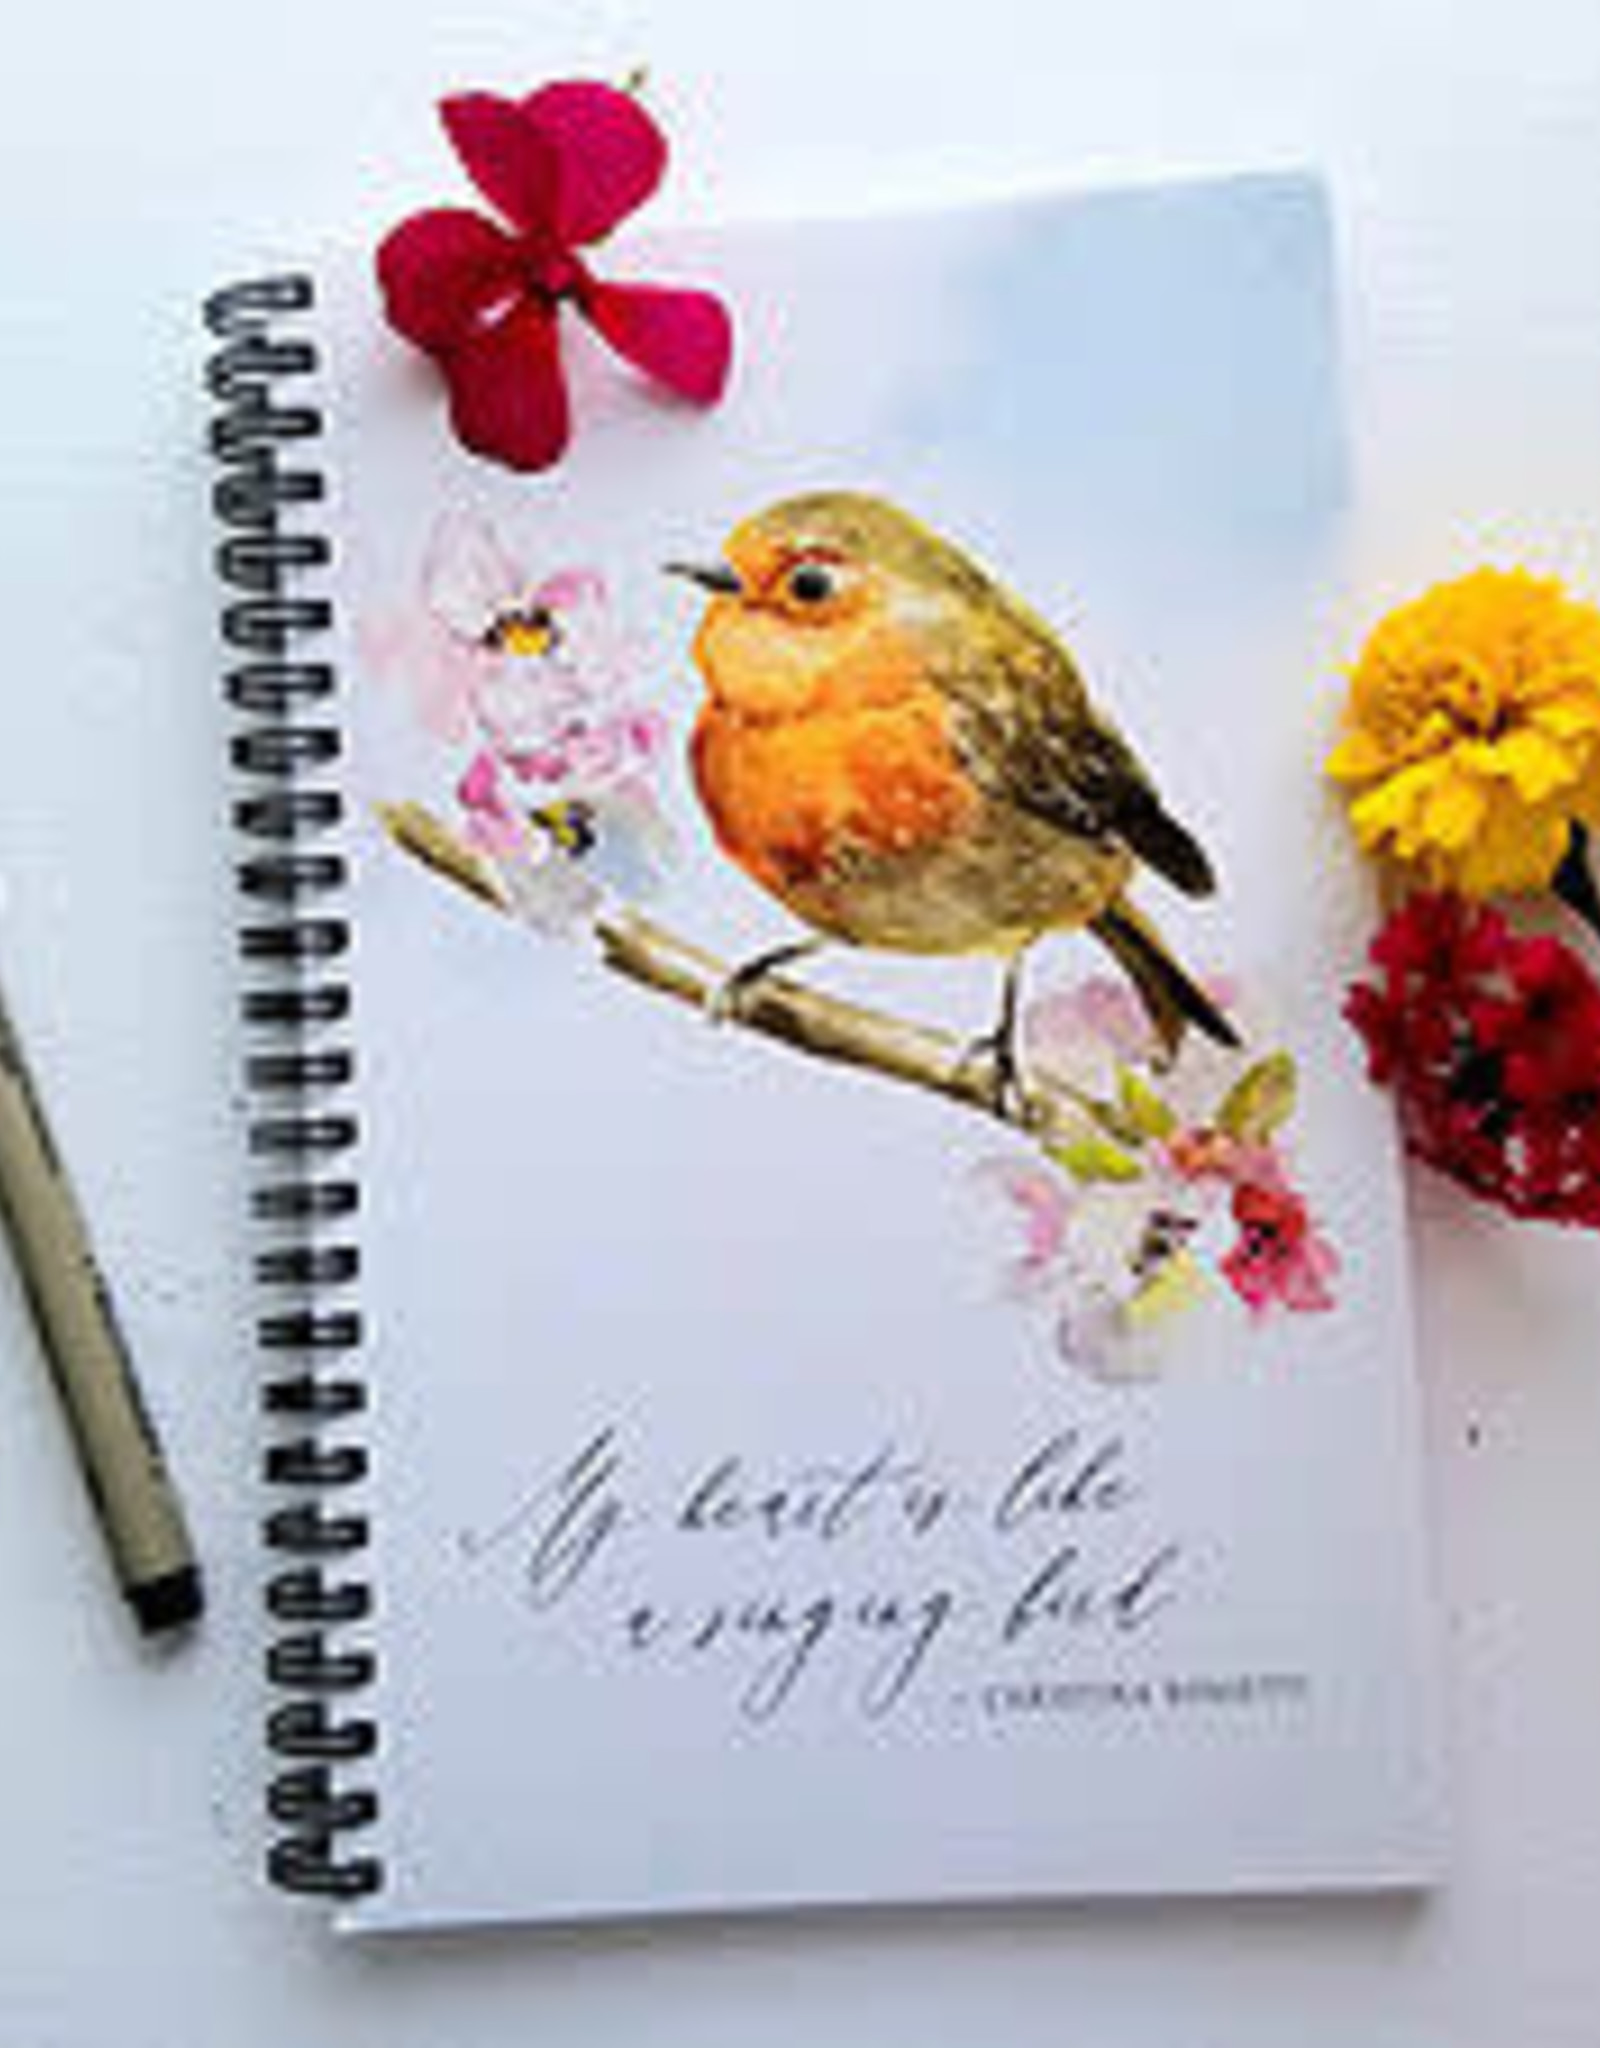 Coral barclay, Inspirational Journal